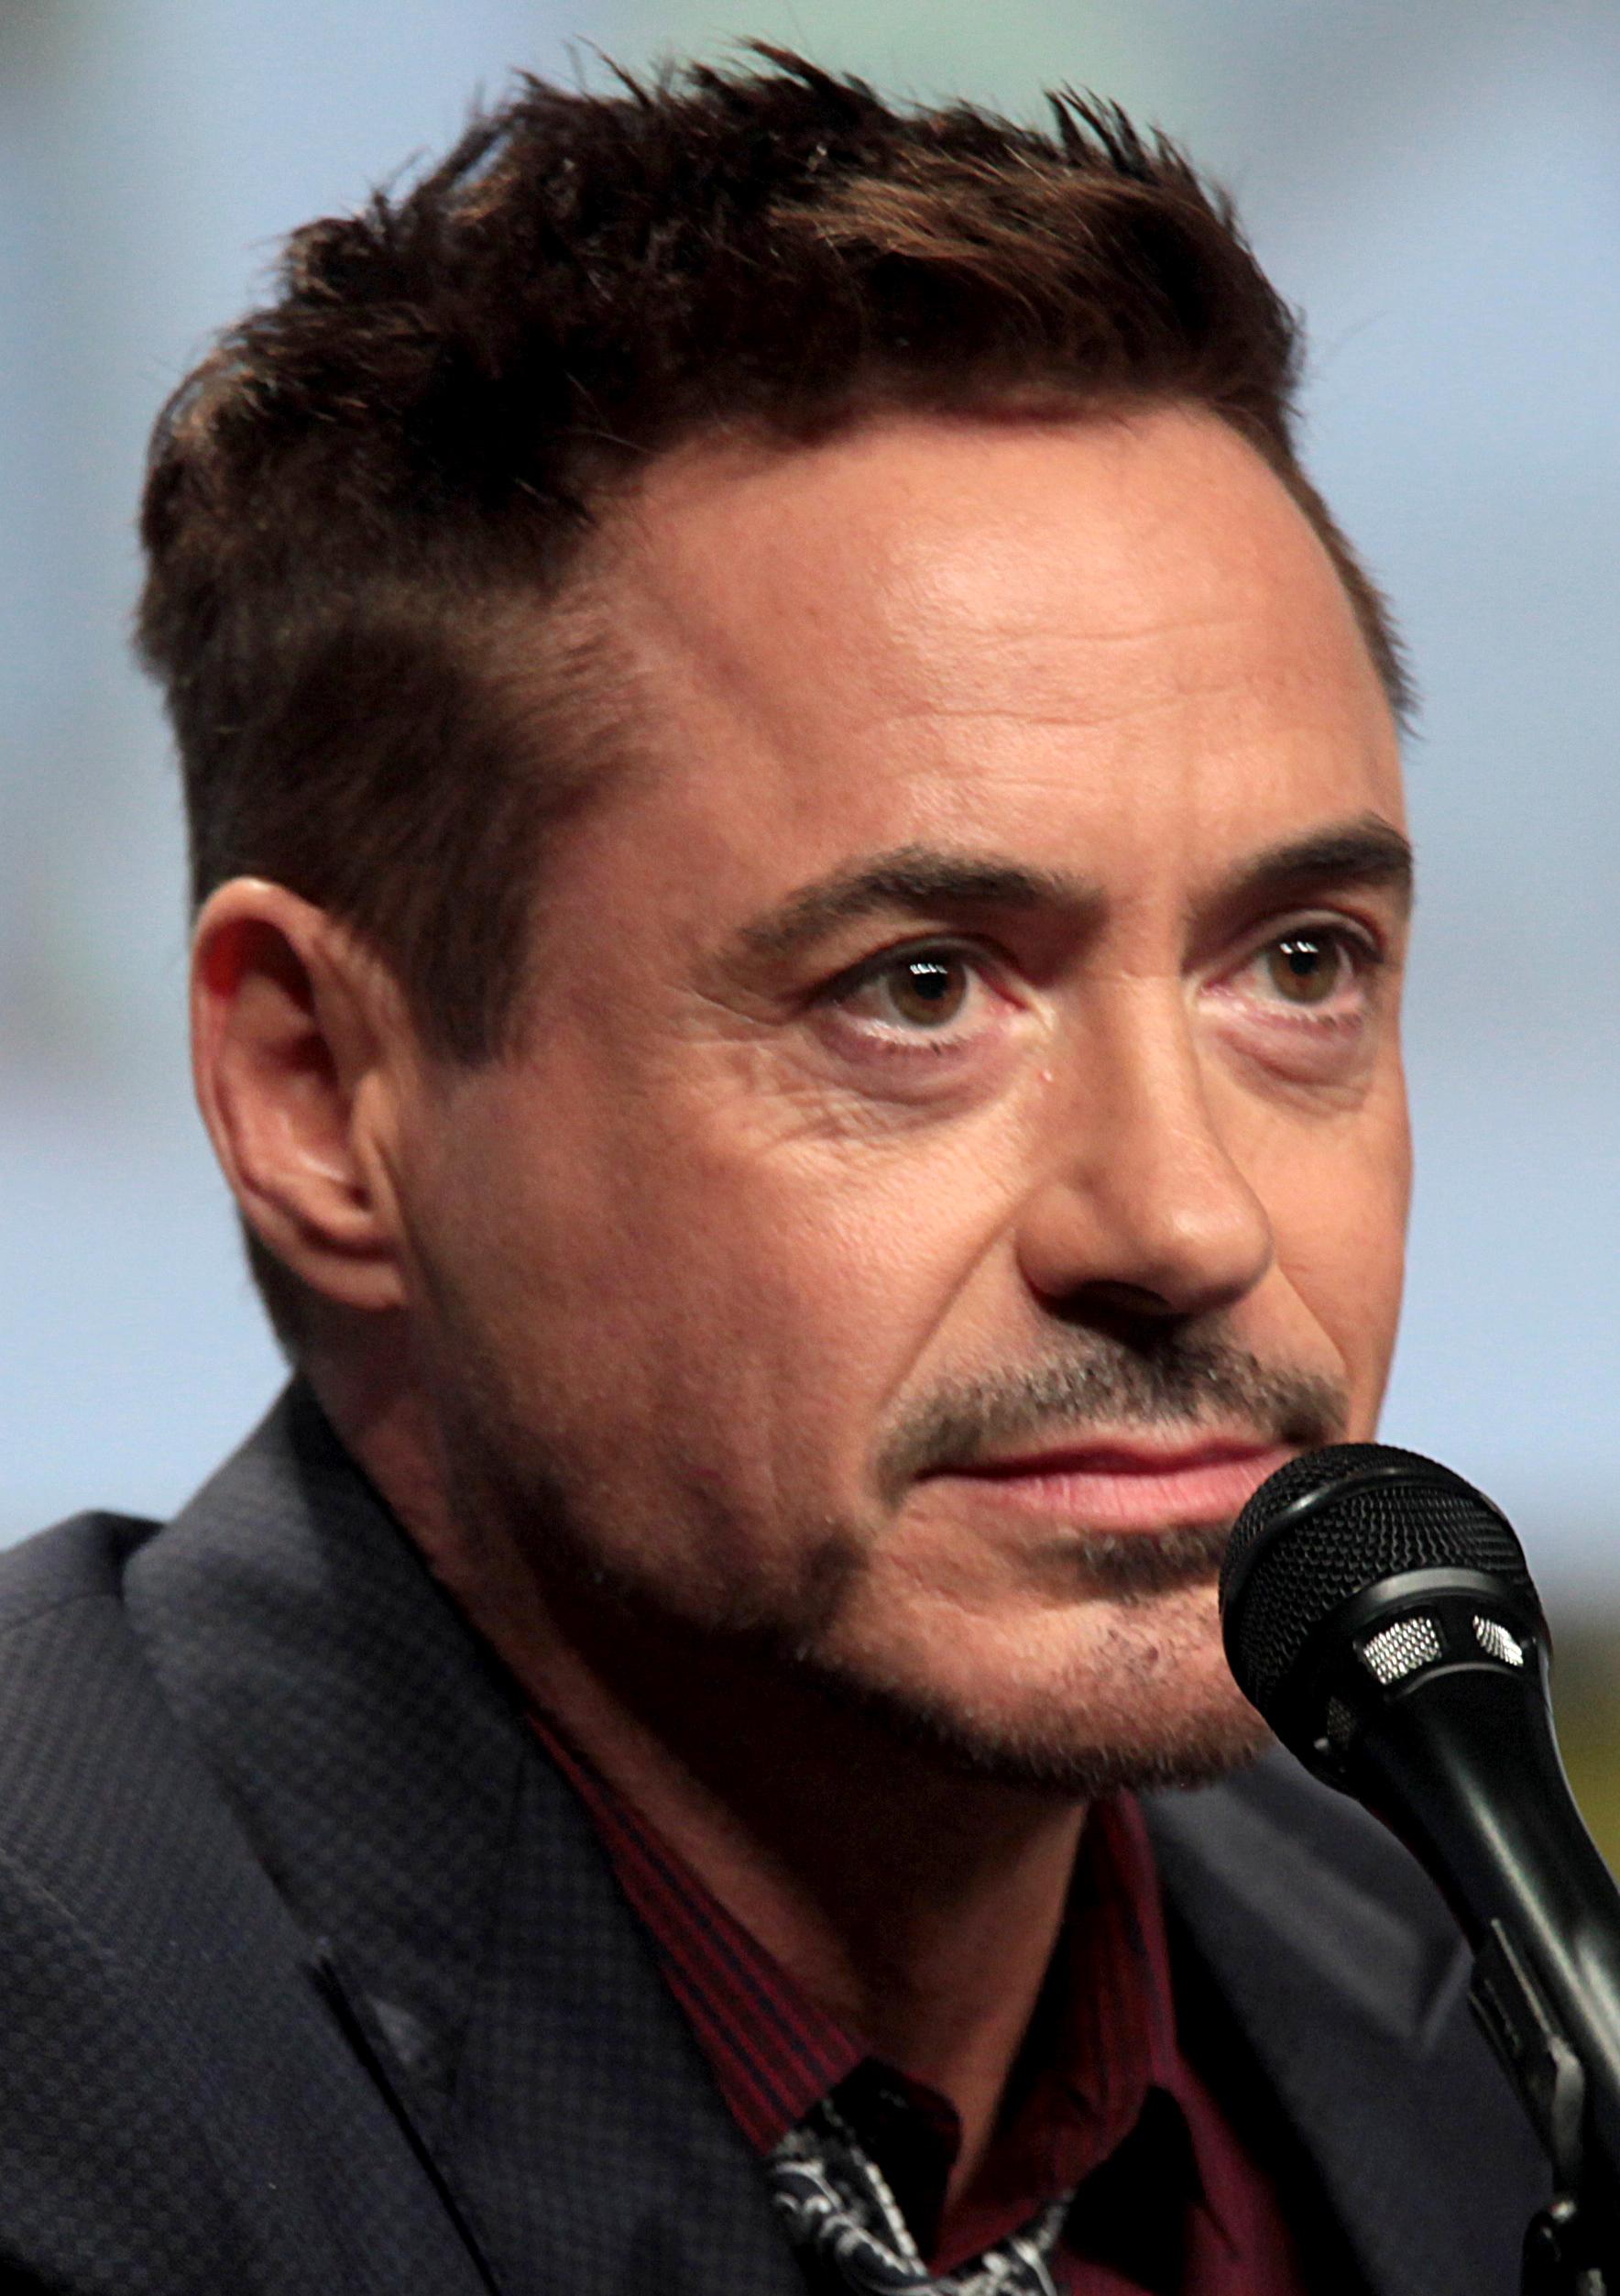 Robert Downey, Jr. - Wikipedia, the free encyclopedia